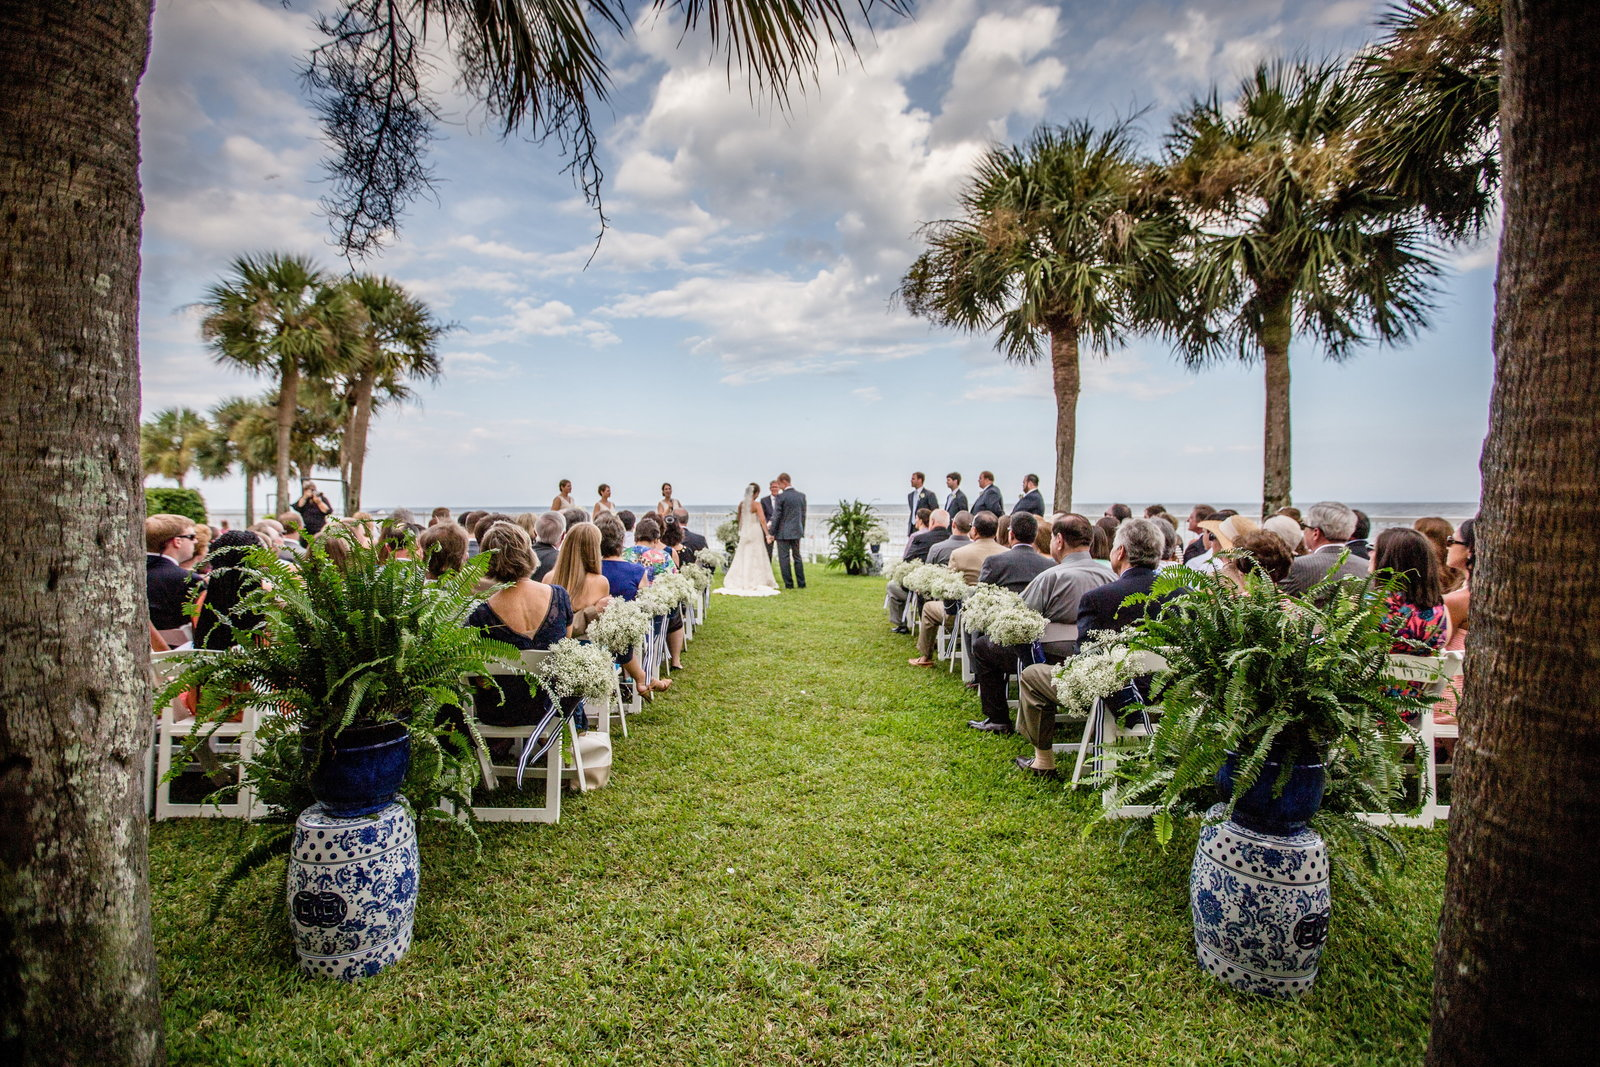 St. Simons Island Wedding, Christina + Daniel, Bobbi Brinkman Photography